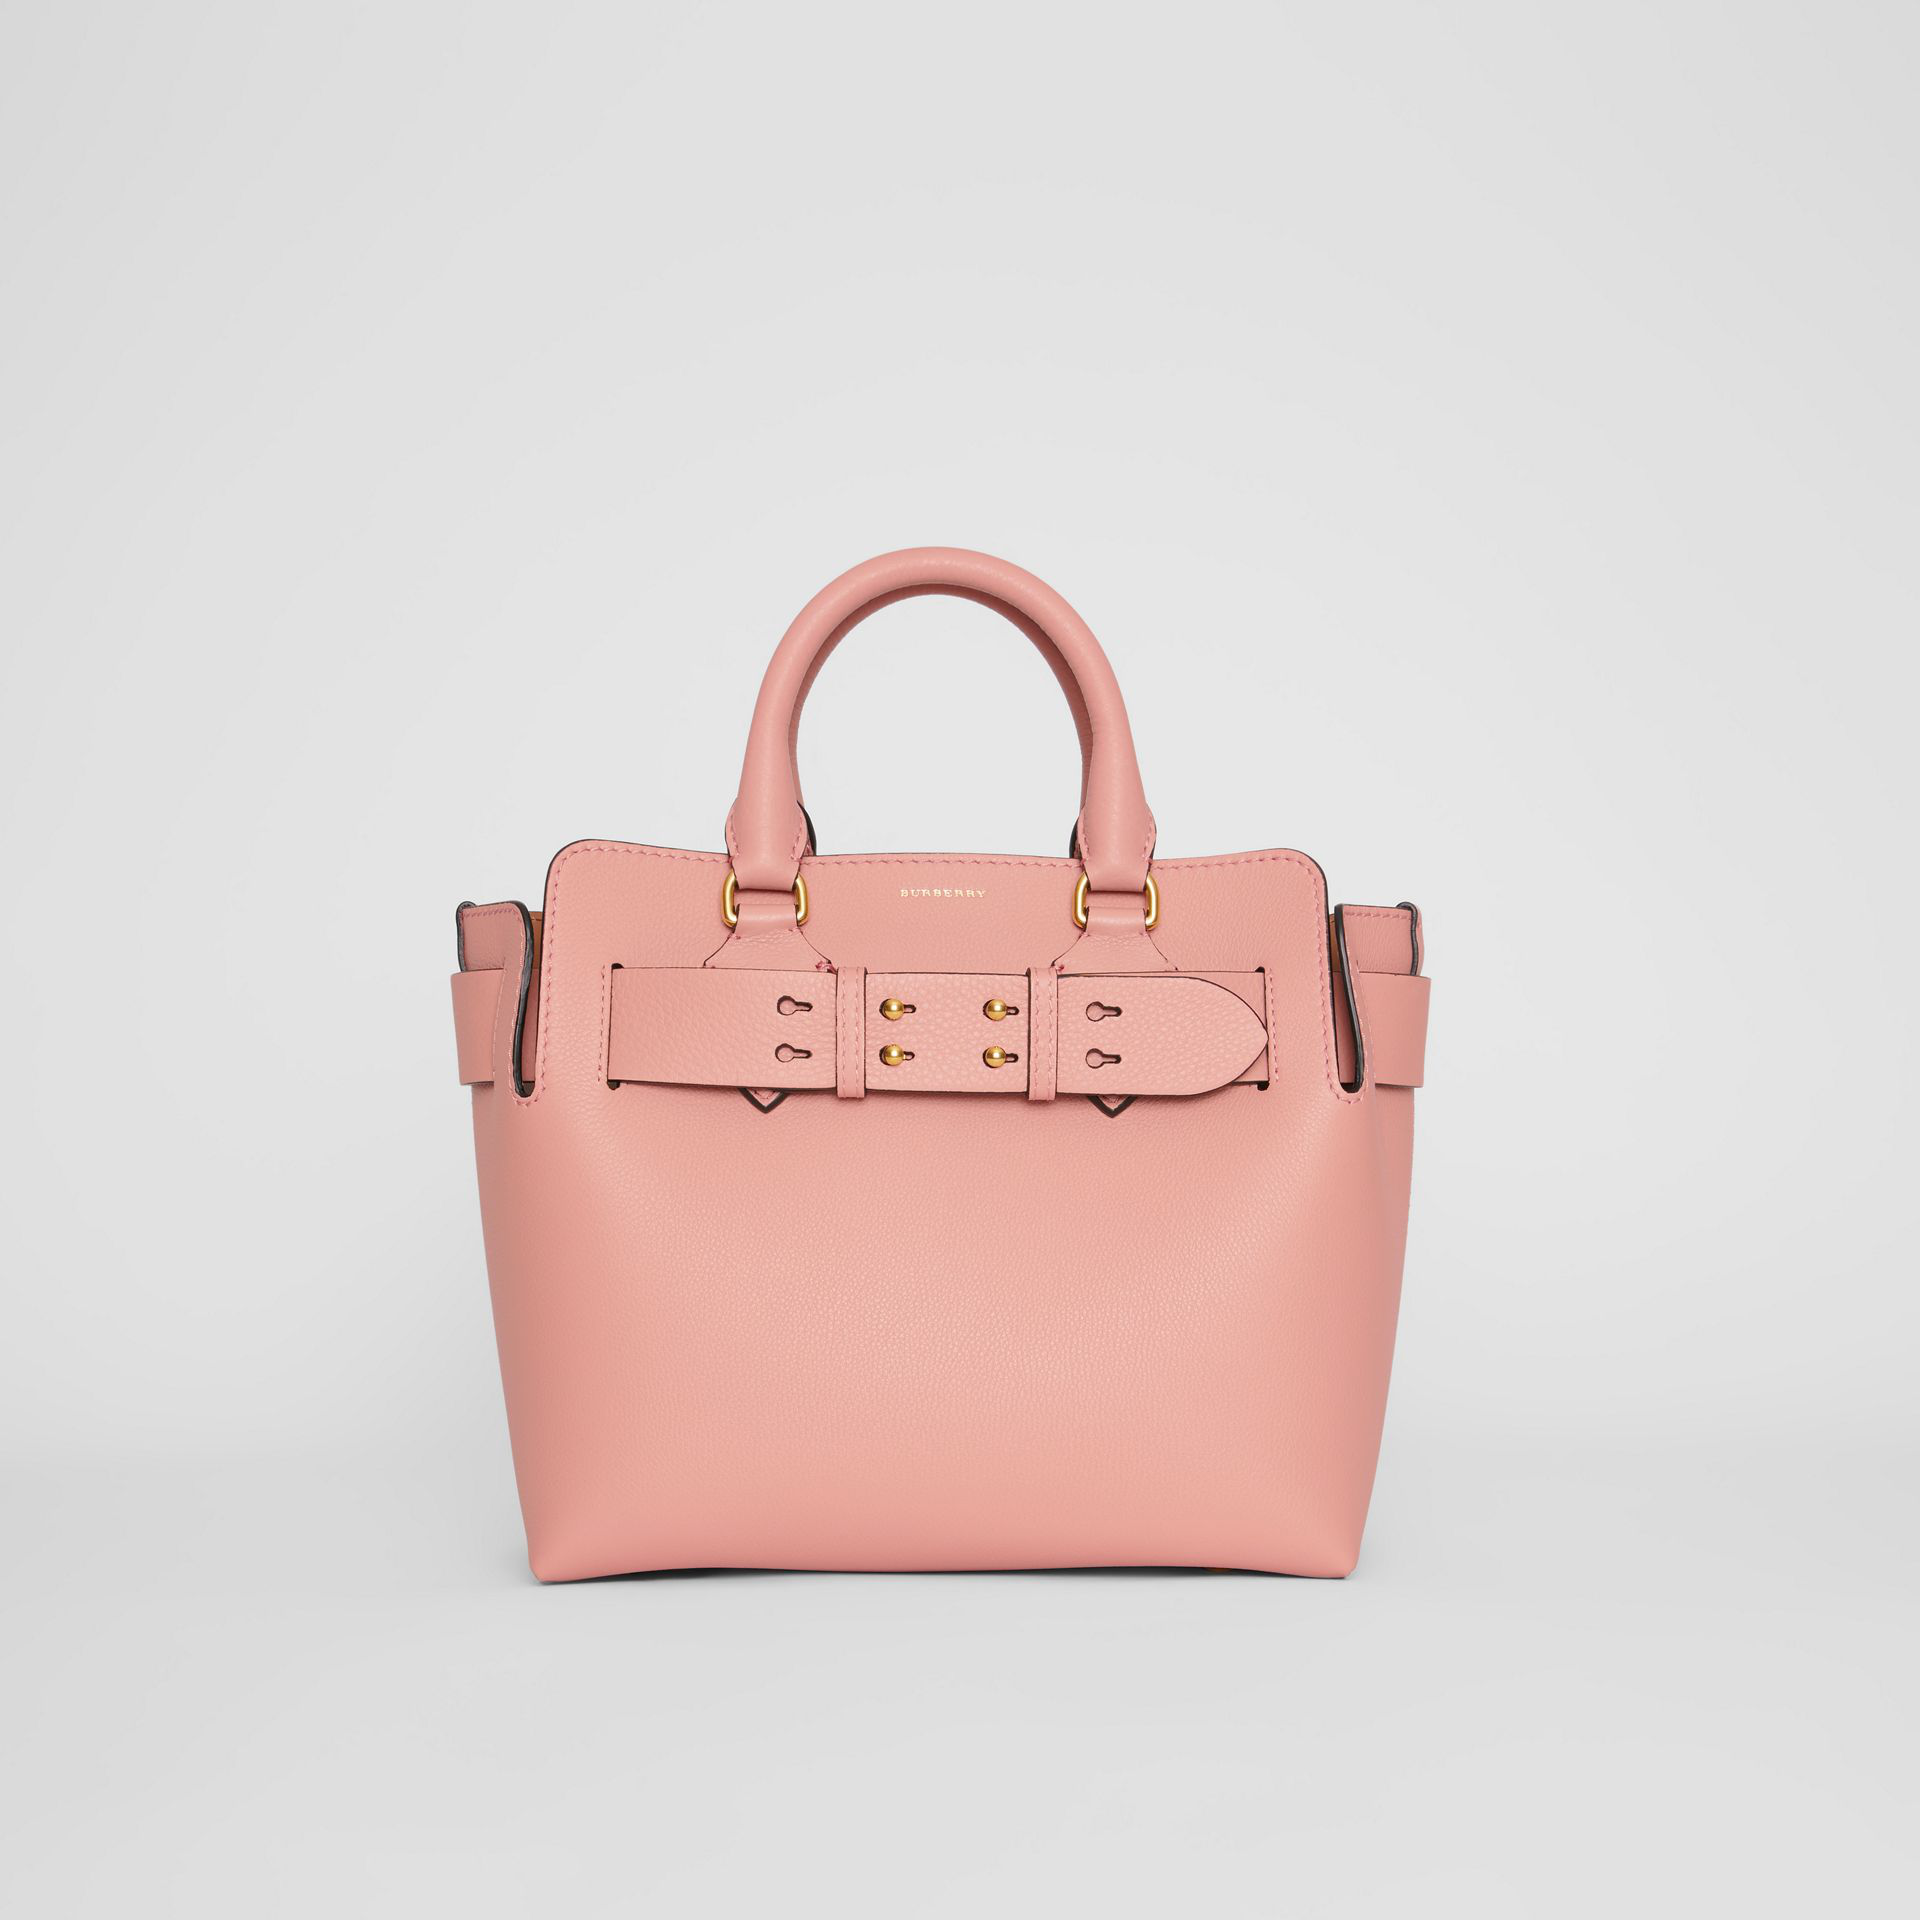 Burberry The Small Belt Bag Aus Leder In Ash Rose